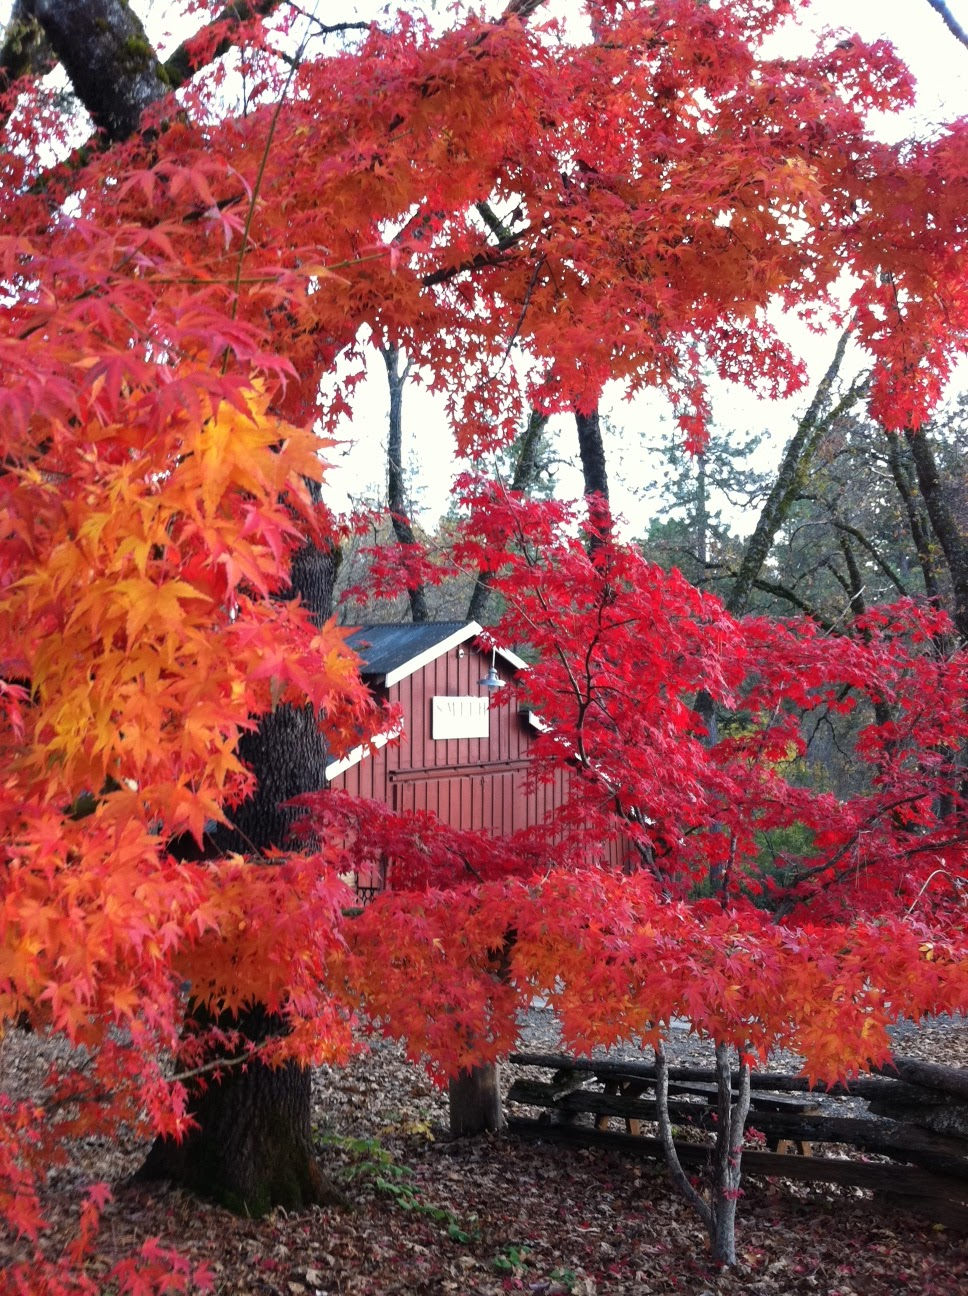 Sierra Foothills Wineries Fall Colors Lure Visitors To